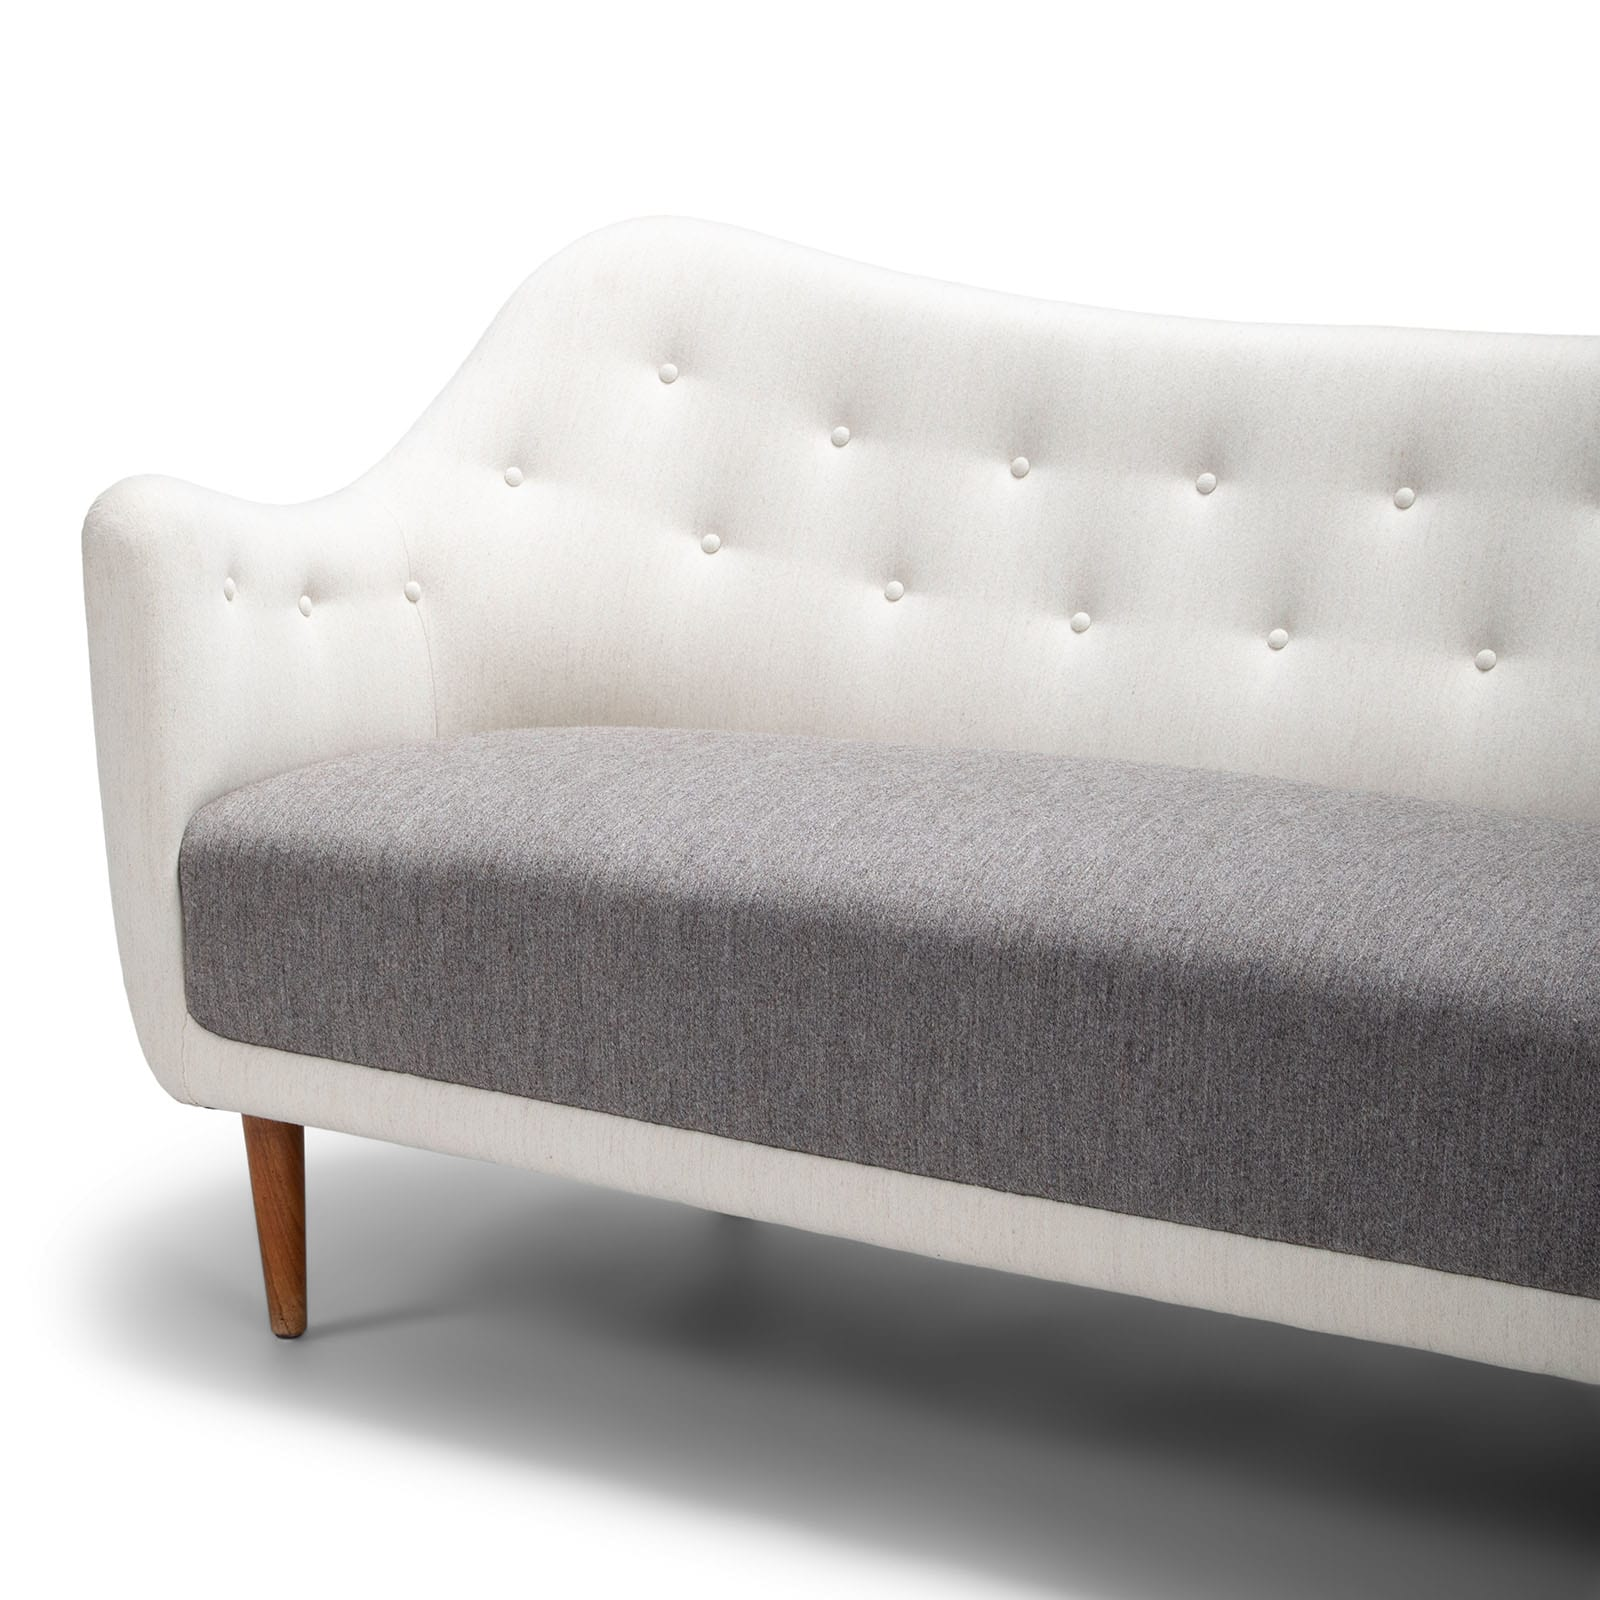 A two and a half seater sofa